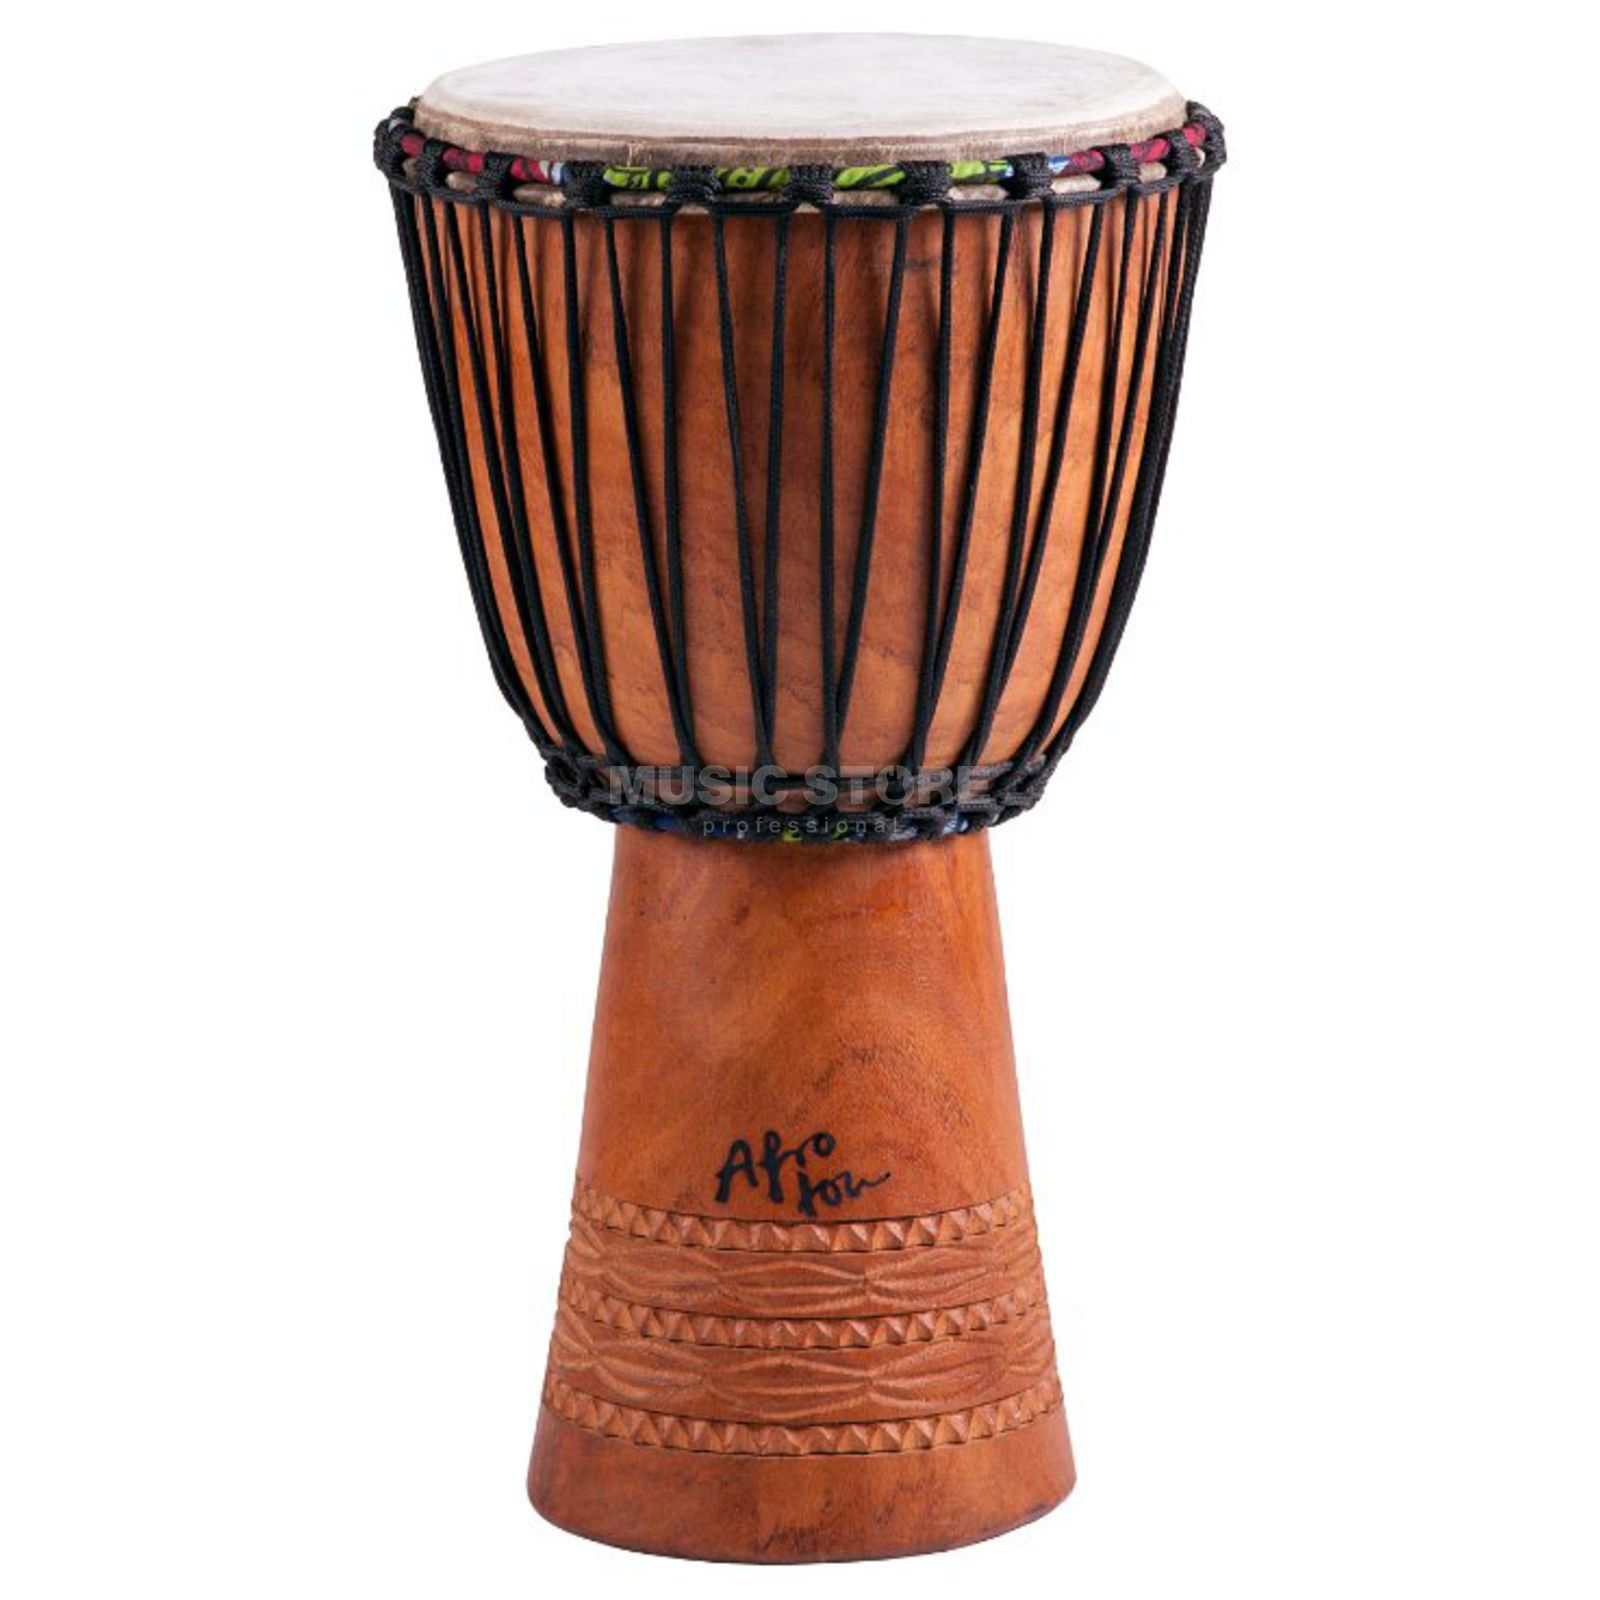 Afroton Djembe ADM M01 Master Class Product Image